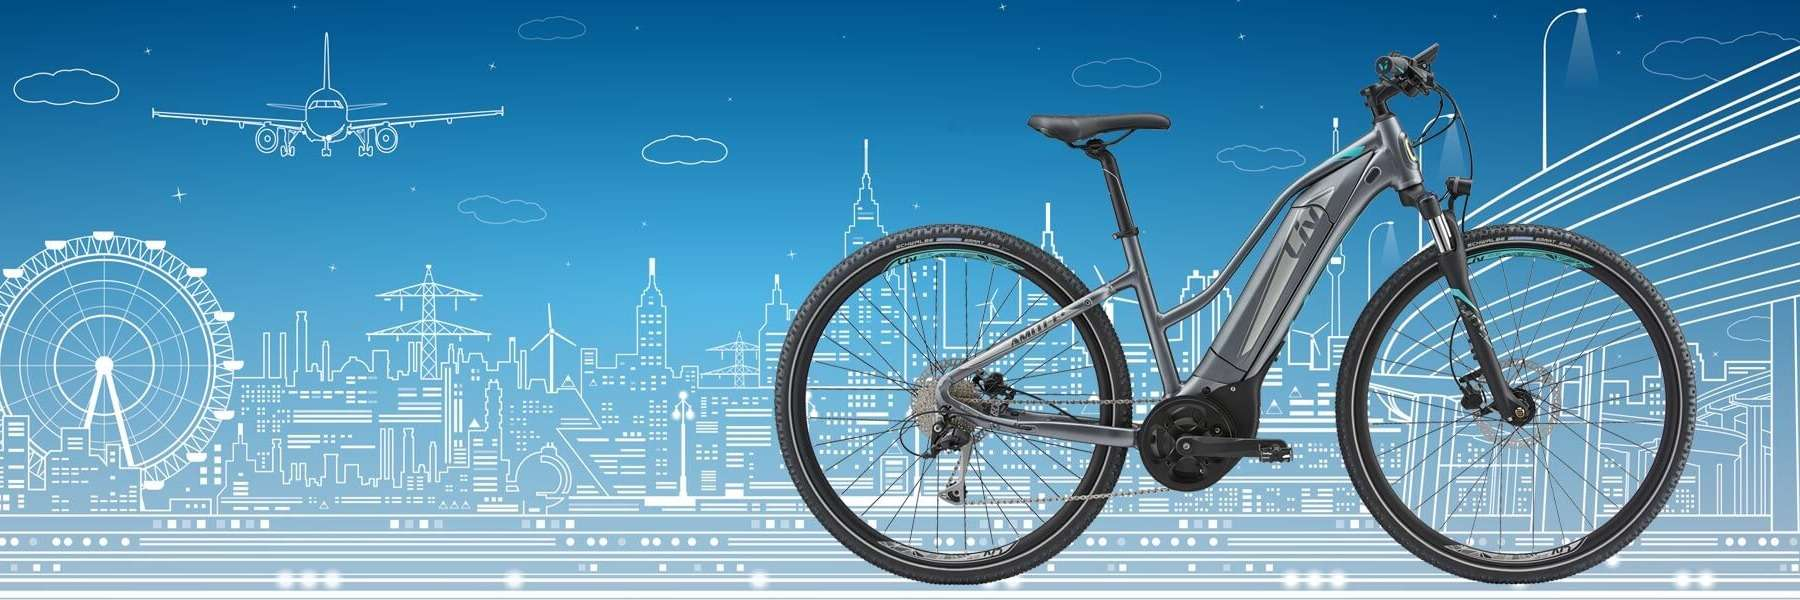 We have Liv / Giant Electric e-bikes for test rides!